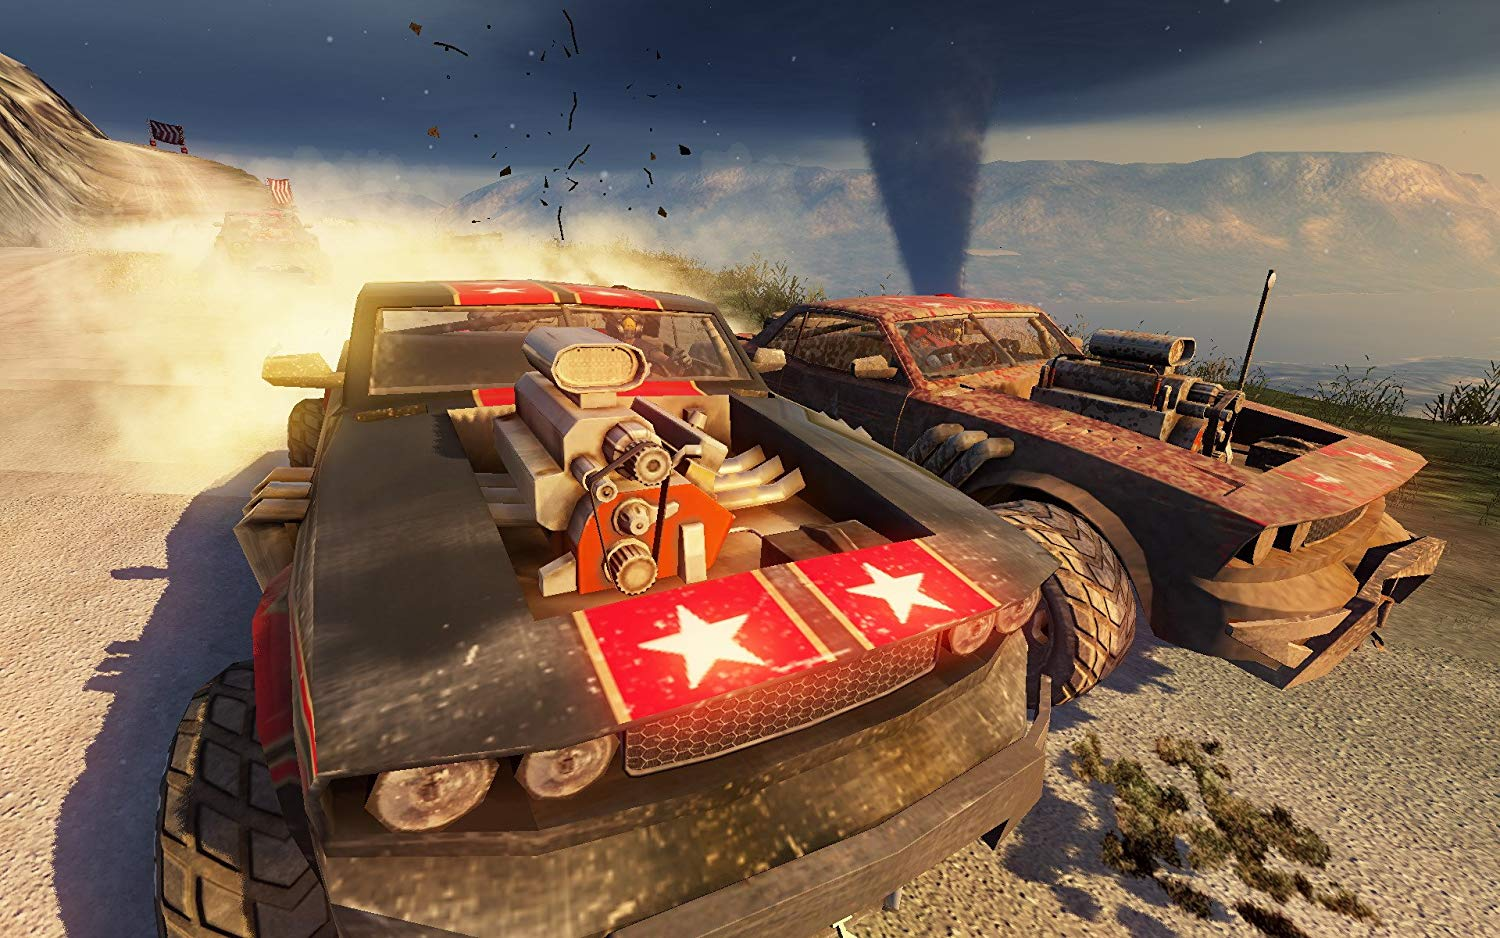 You can now play FUEL on the Xbox One thanks to backward compatibility